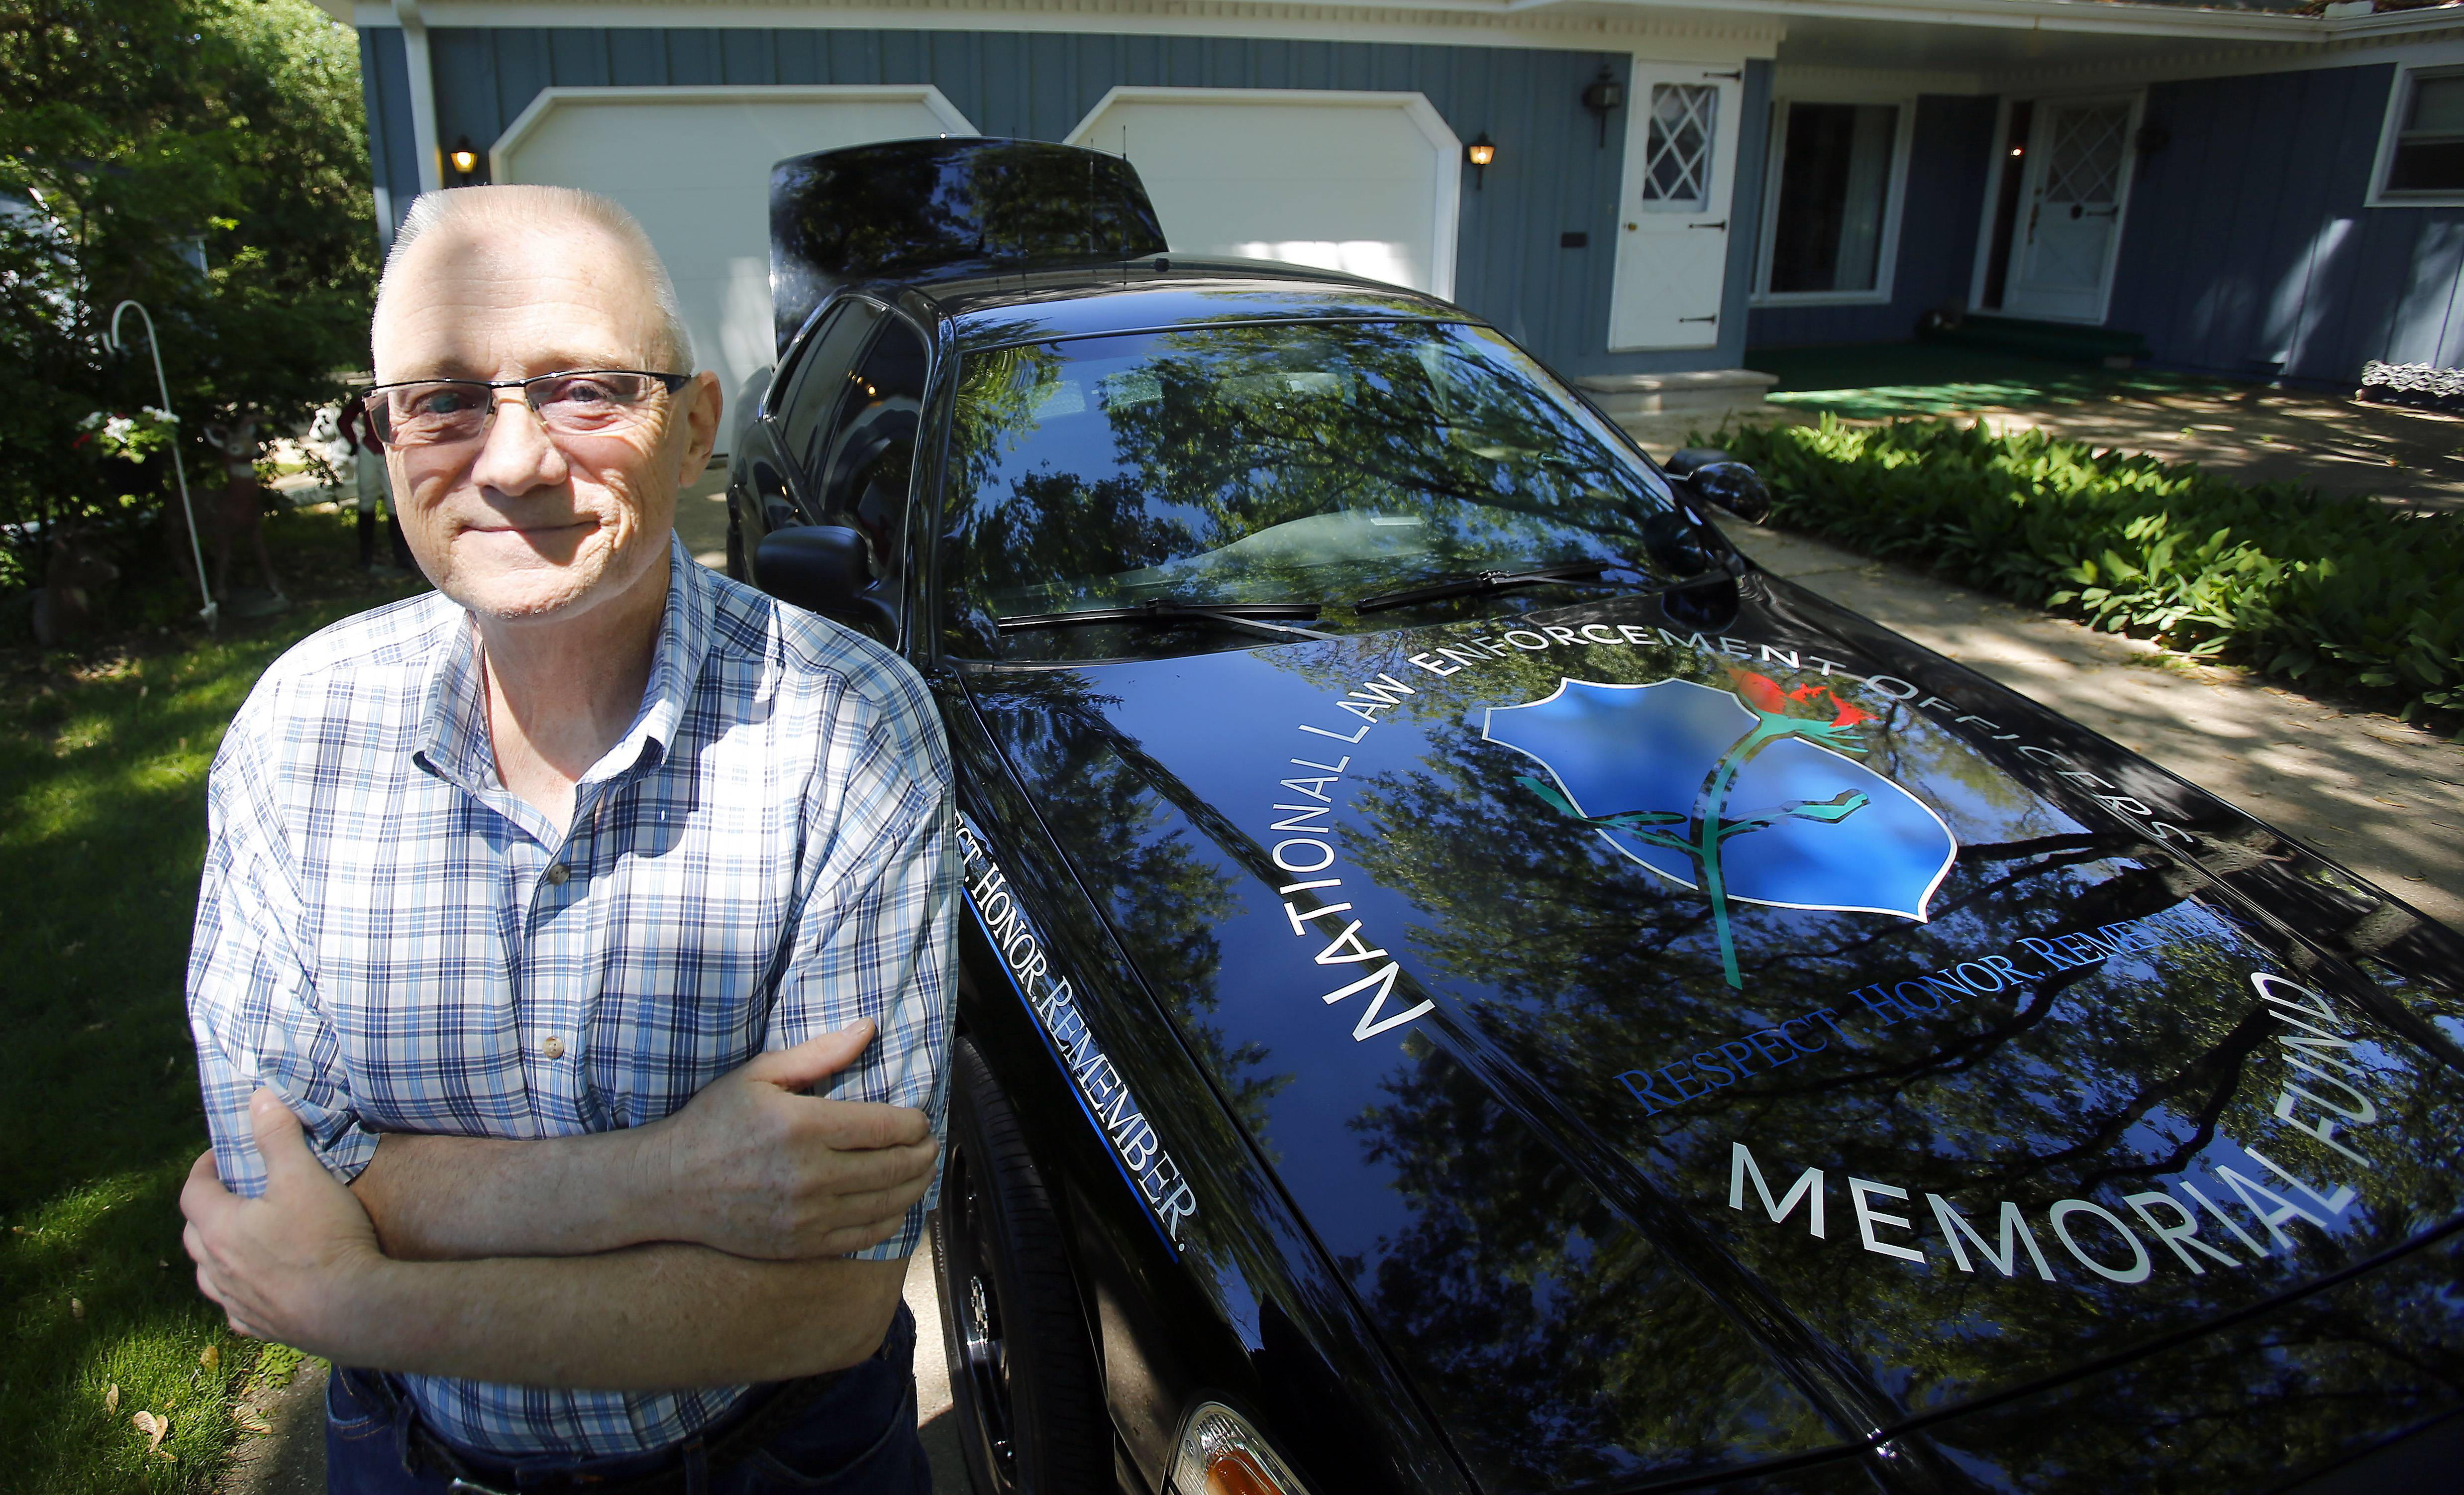 Cancer survivor Keith Kmieciak of South Elgin built a police memorial car in order to get his mind off his cancer treatment last year.